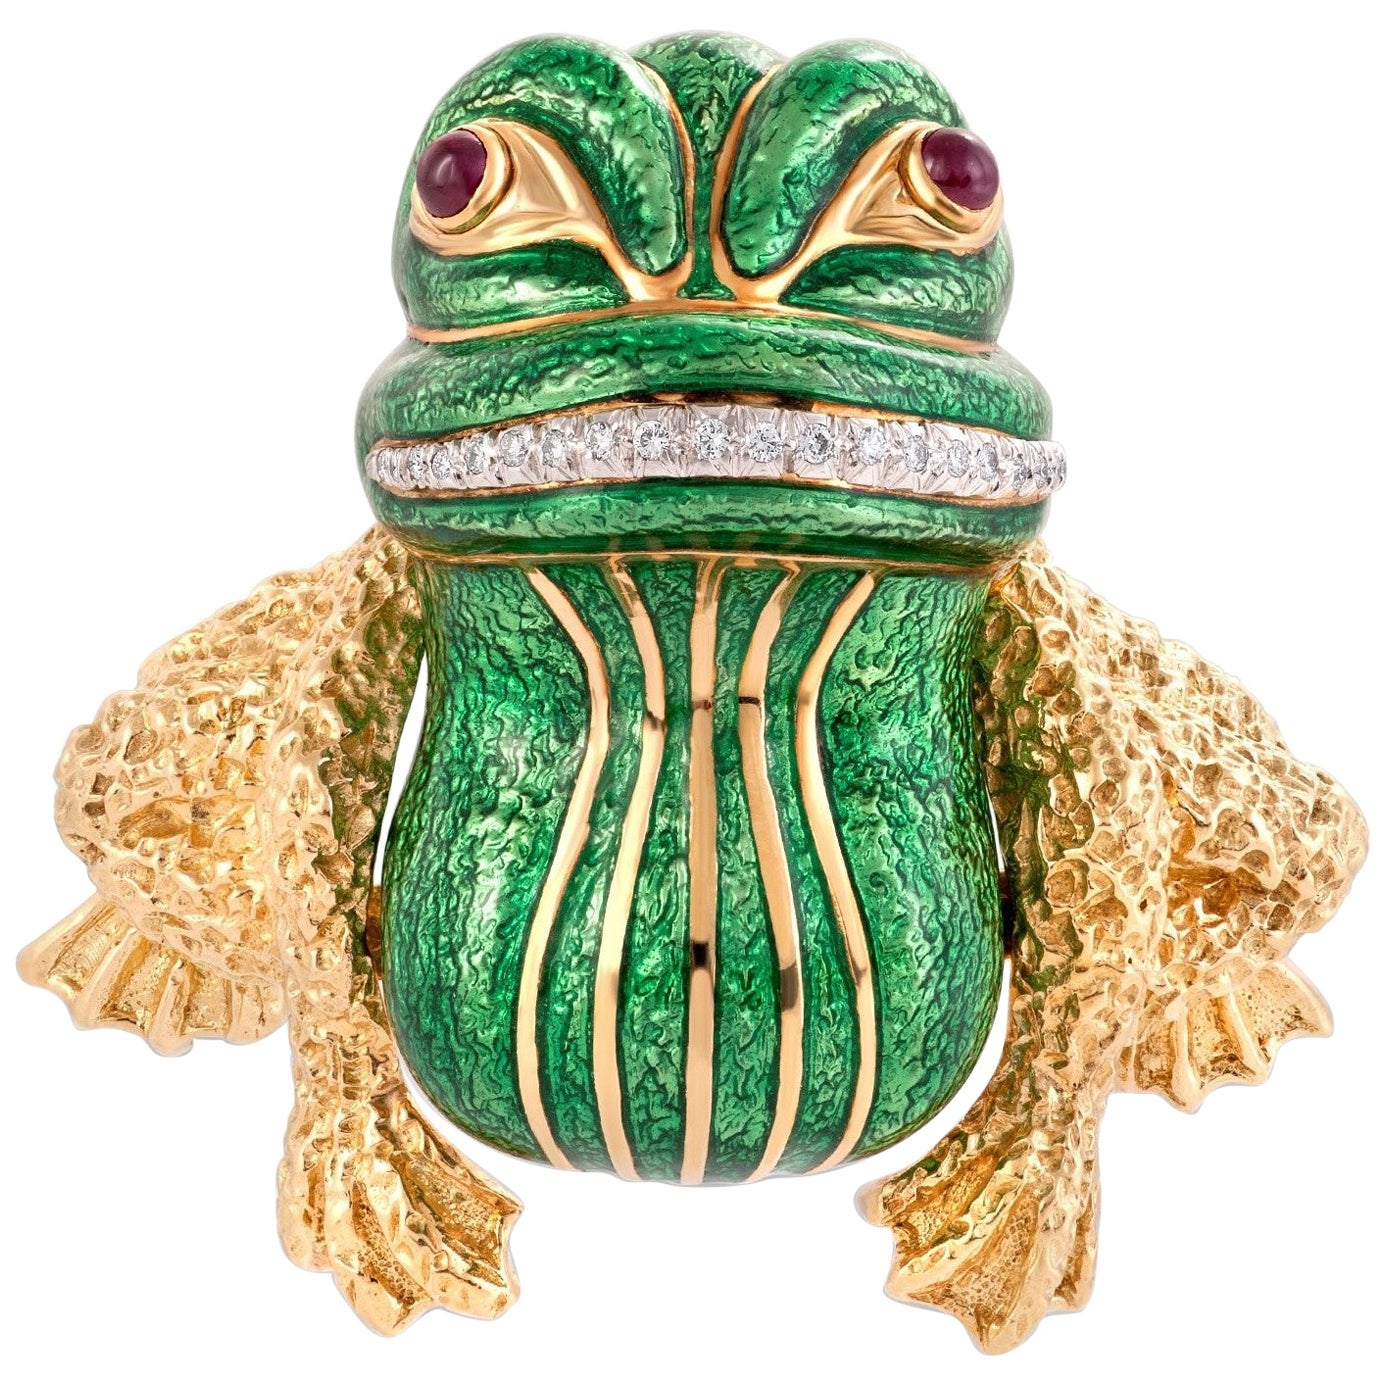 David Webb Green Enamel Bullfrog Brooch with Diamonds & Rubies in 18 Karat Gold